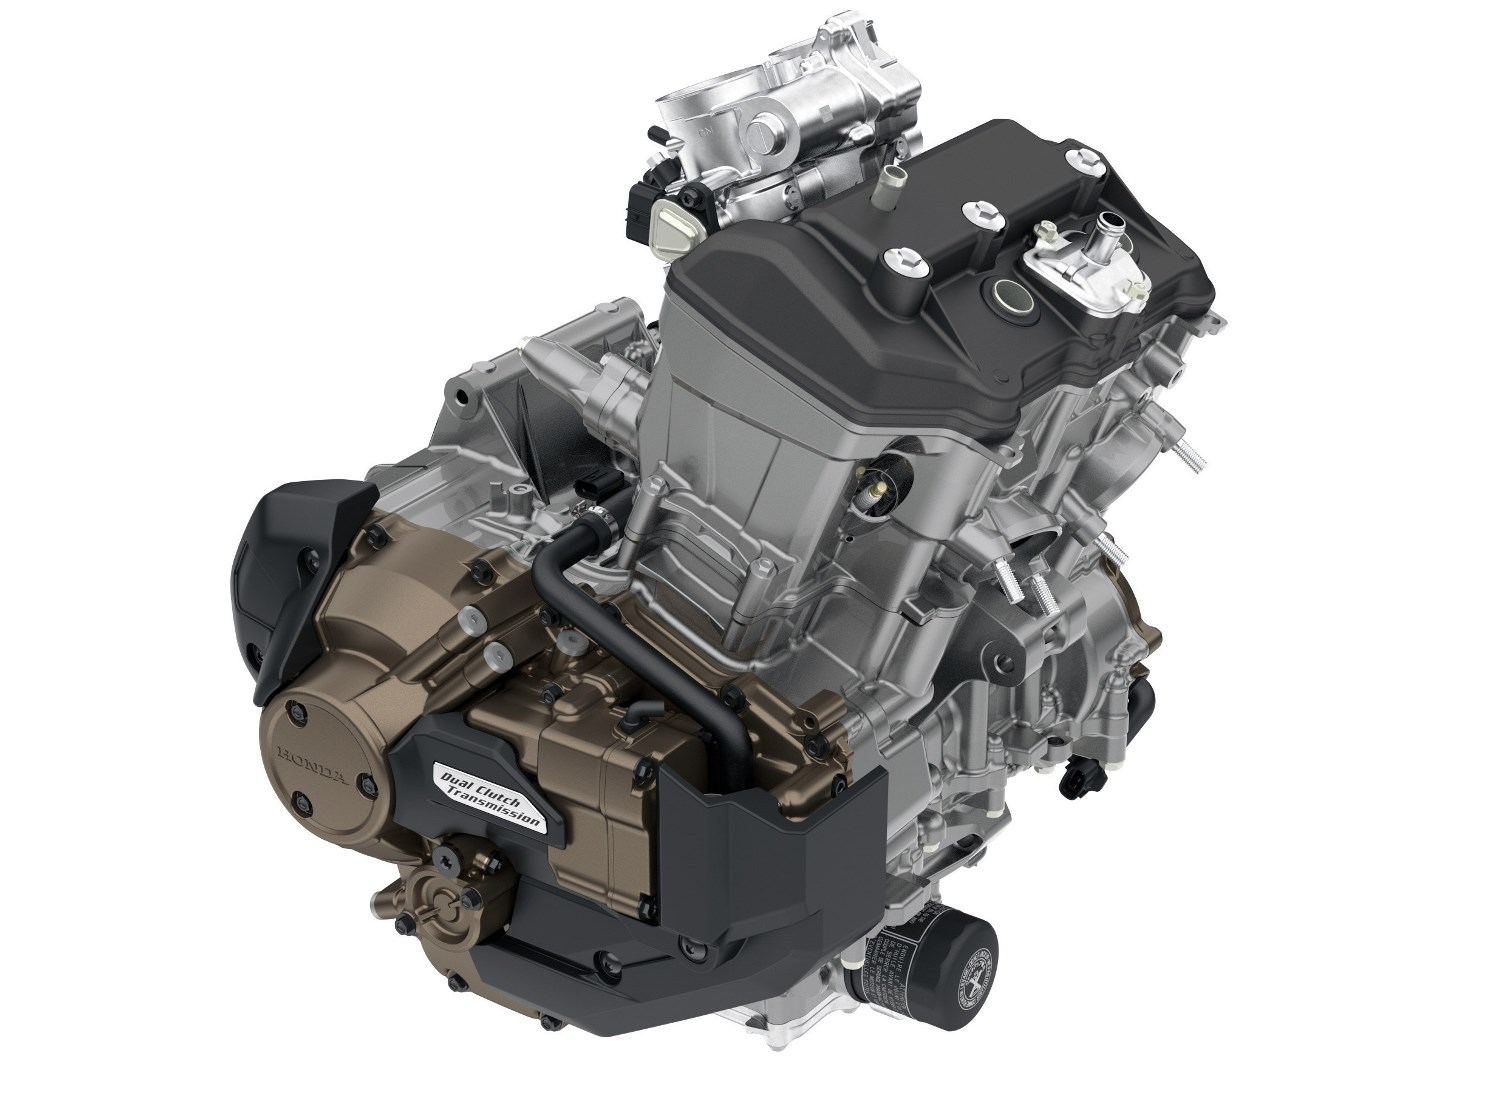 305924_Honda_reaches_ten_years_of_production_of_Dual_Clutch_Transmission